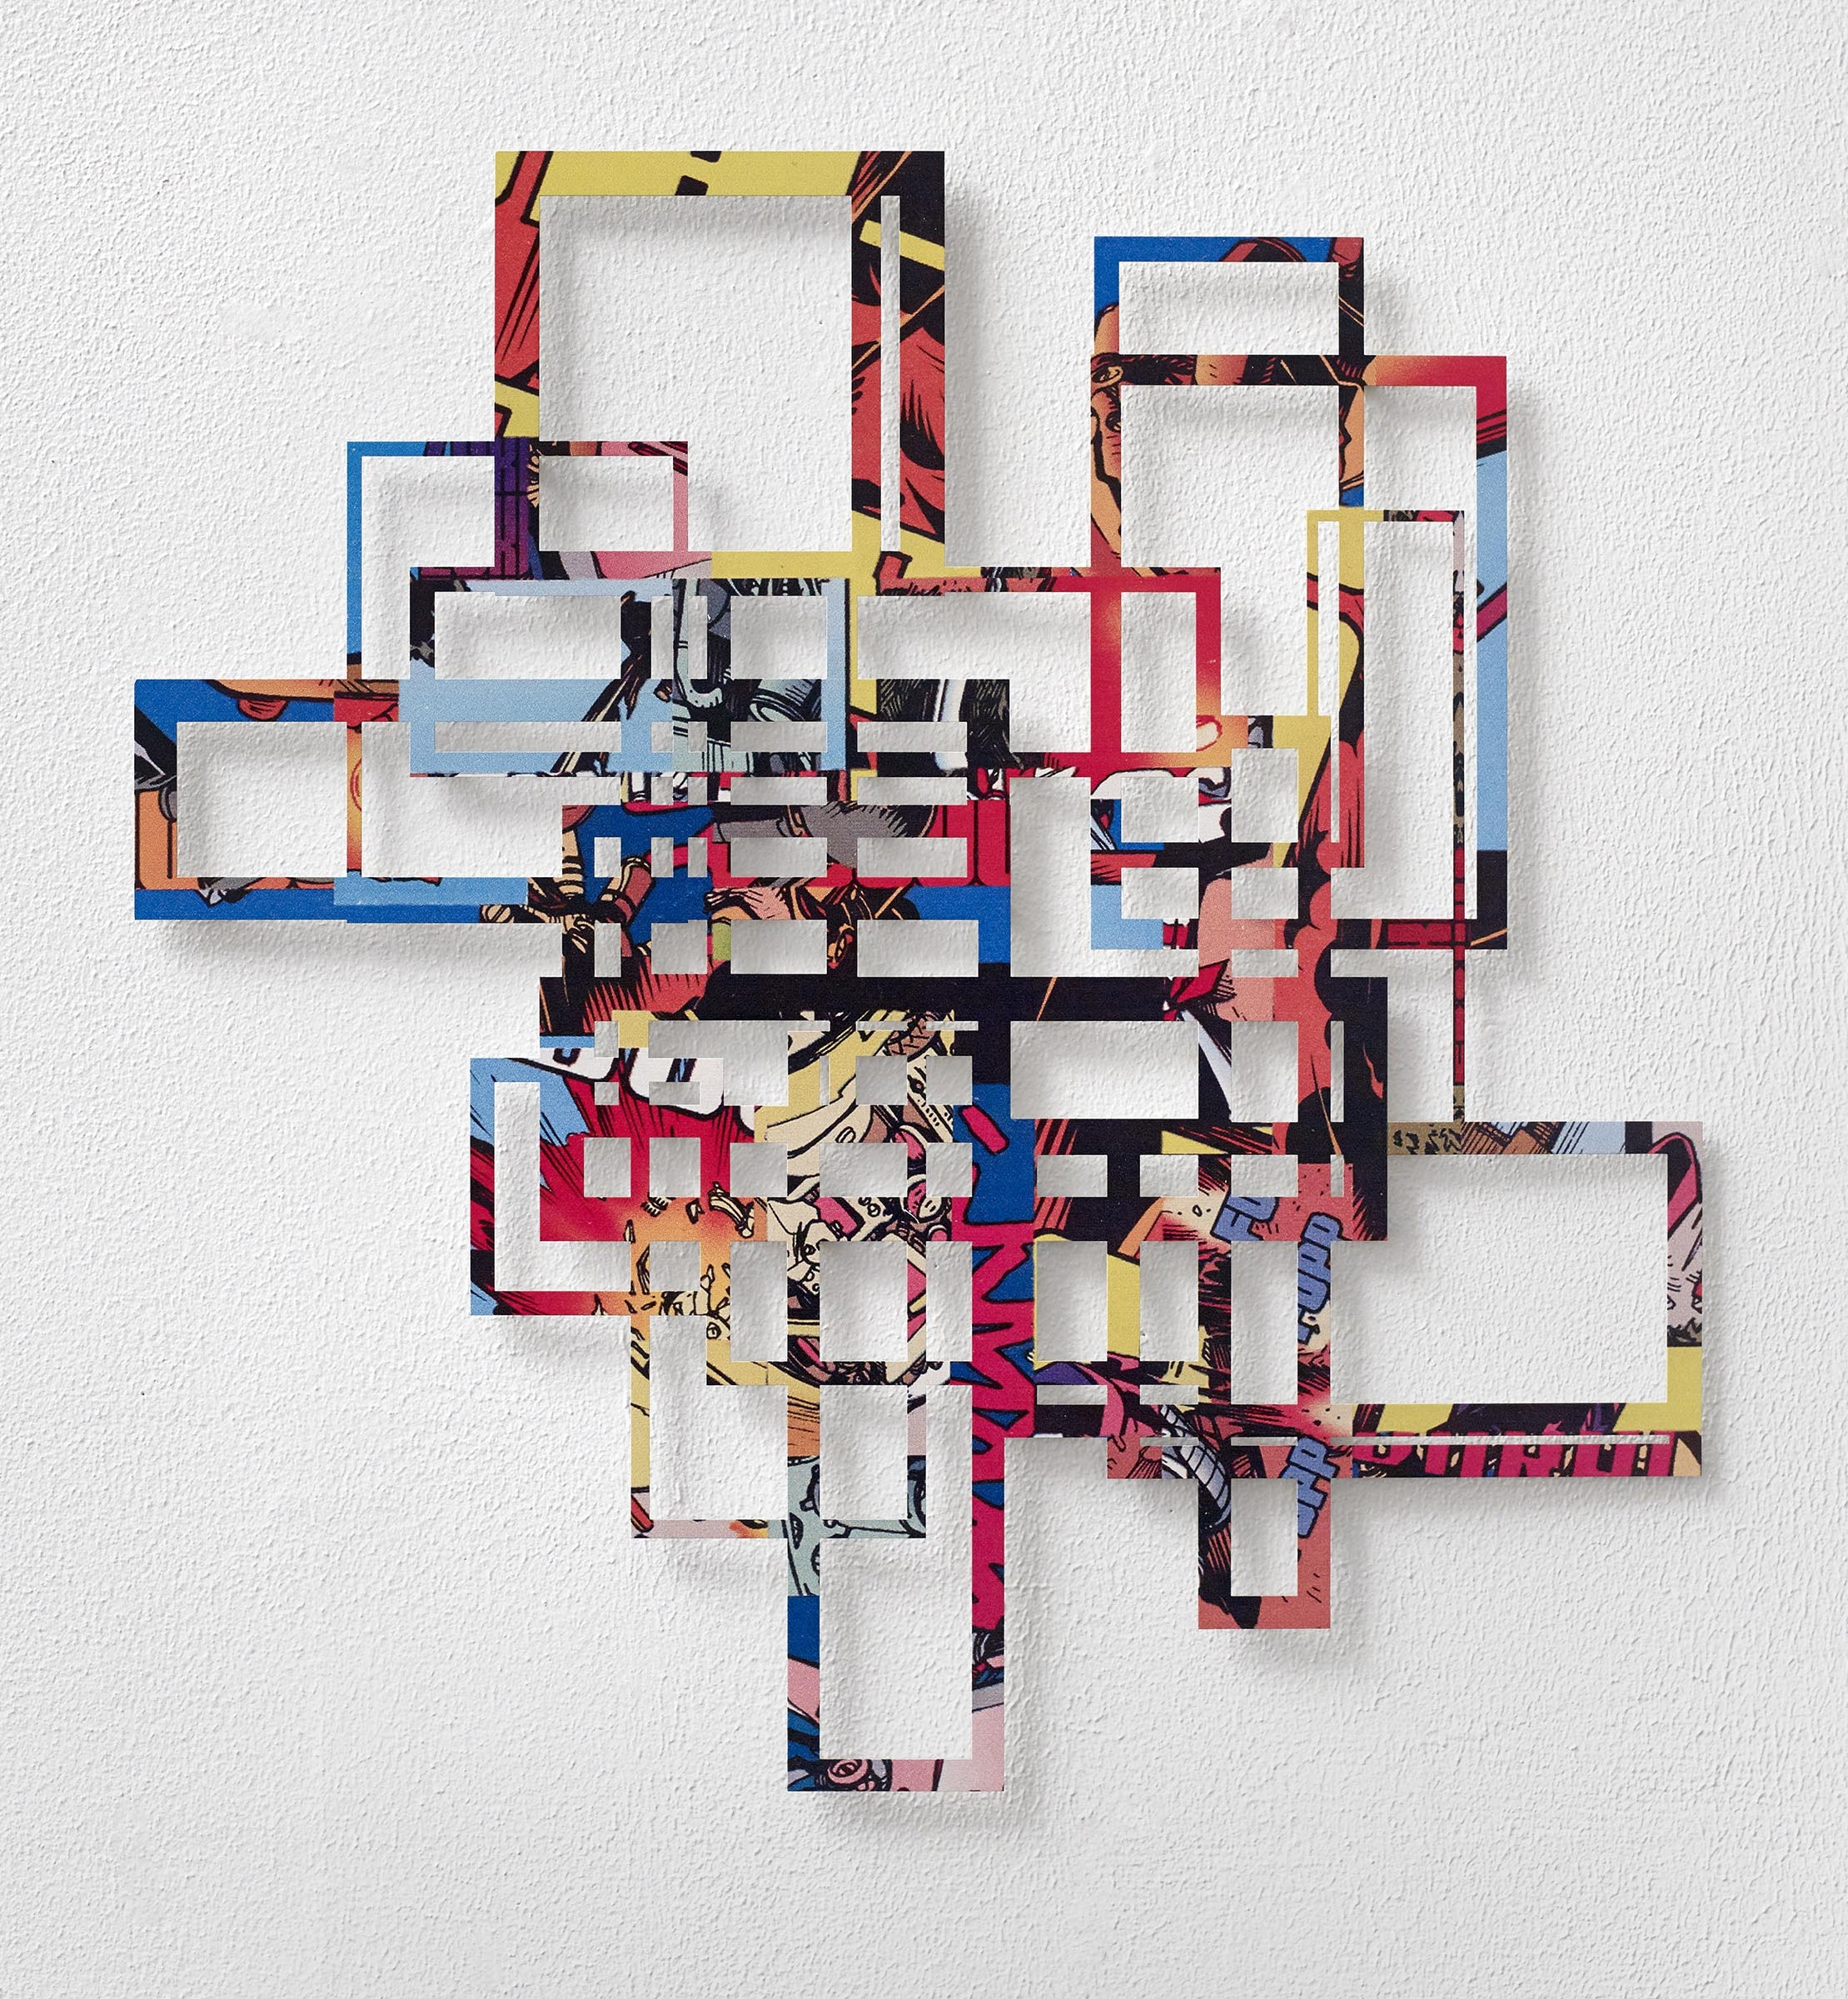 Curtis Gannon  Association Relief #2 (Space City) ink on stainless steel 23 x 22 inches